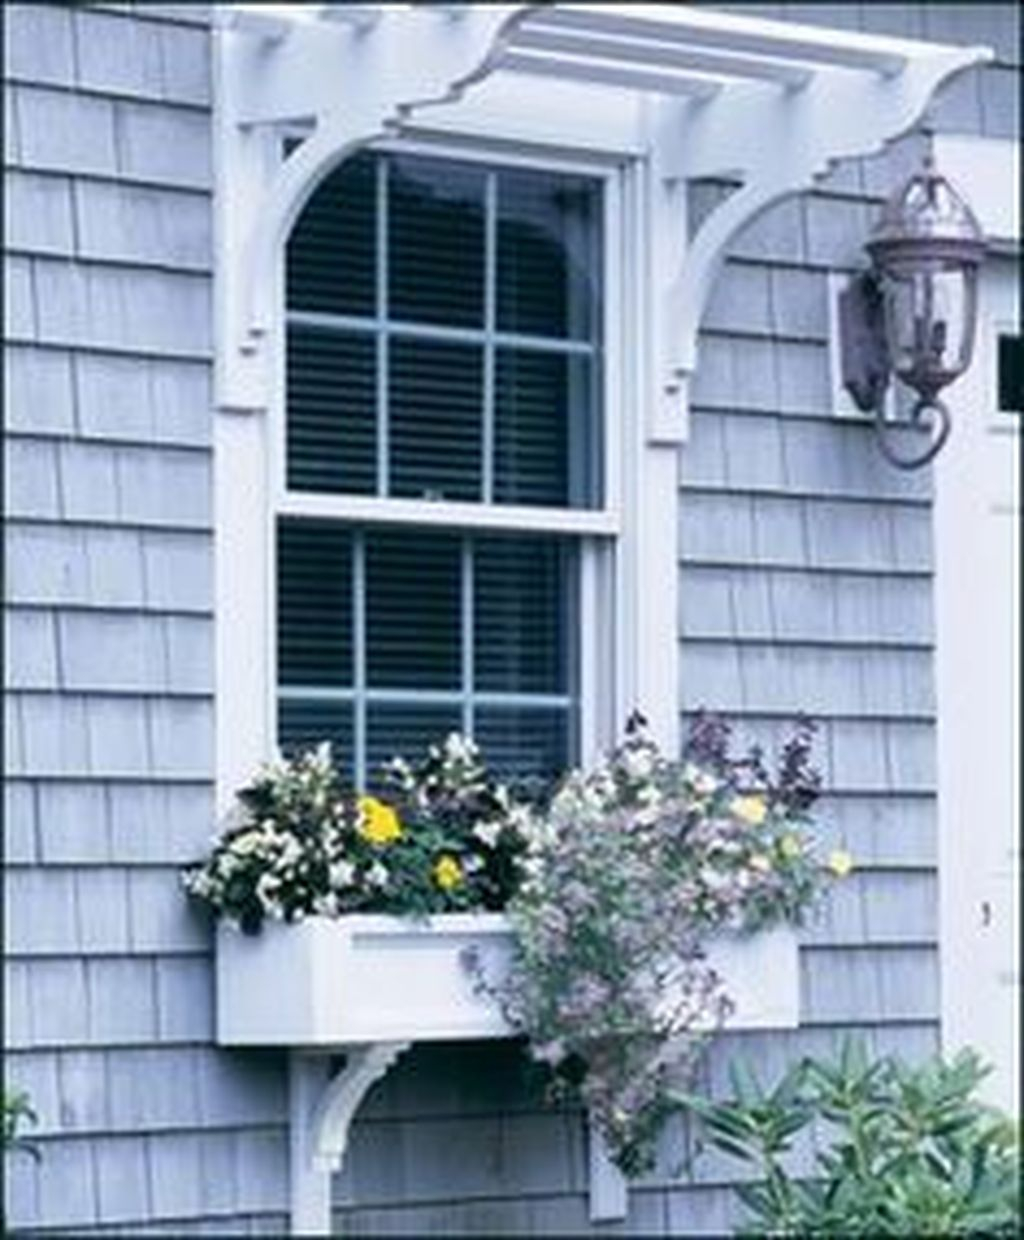 Fabulous Exterior Decoration Ideas With Flower In Window 34